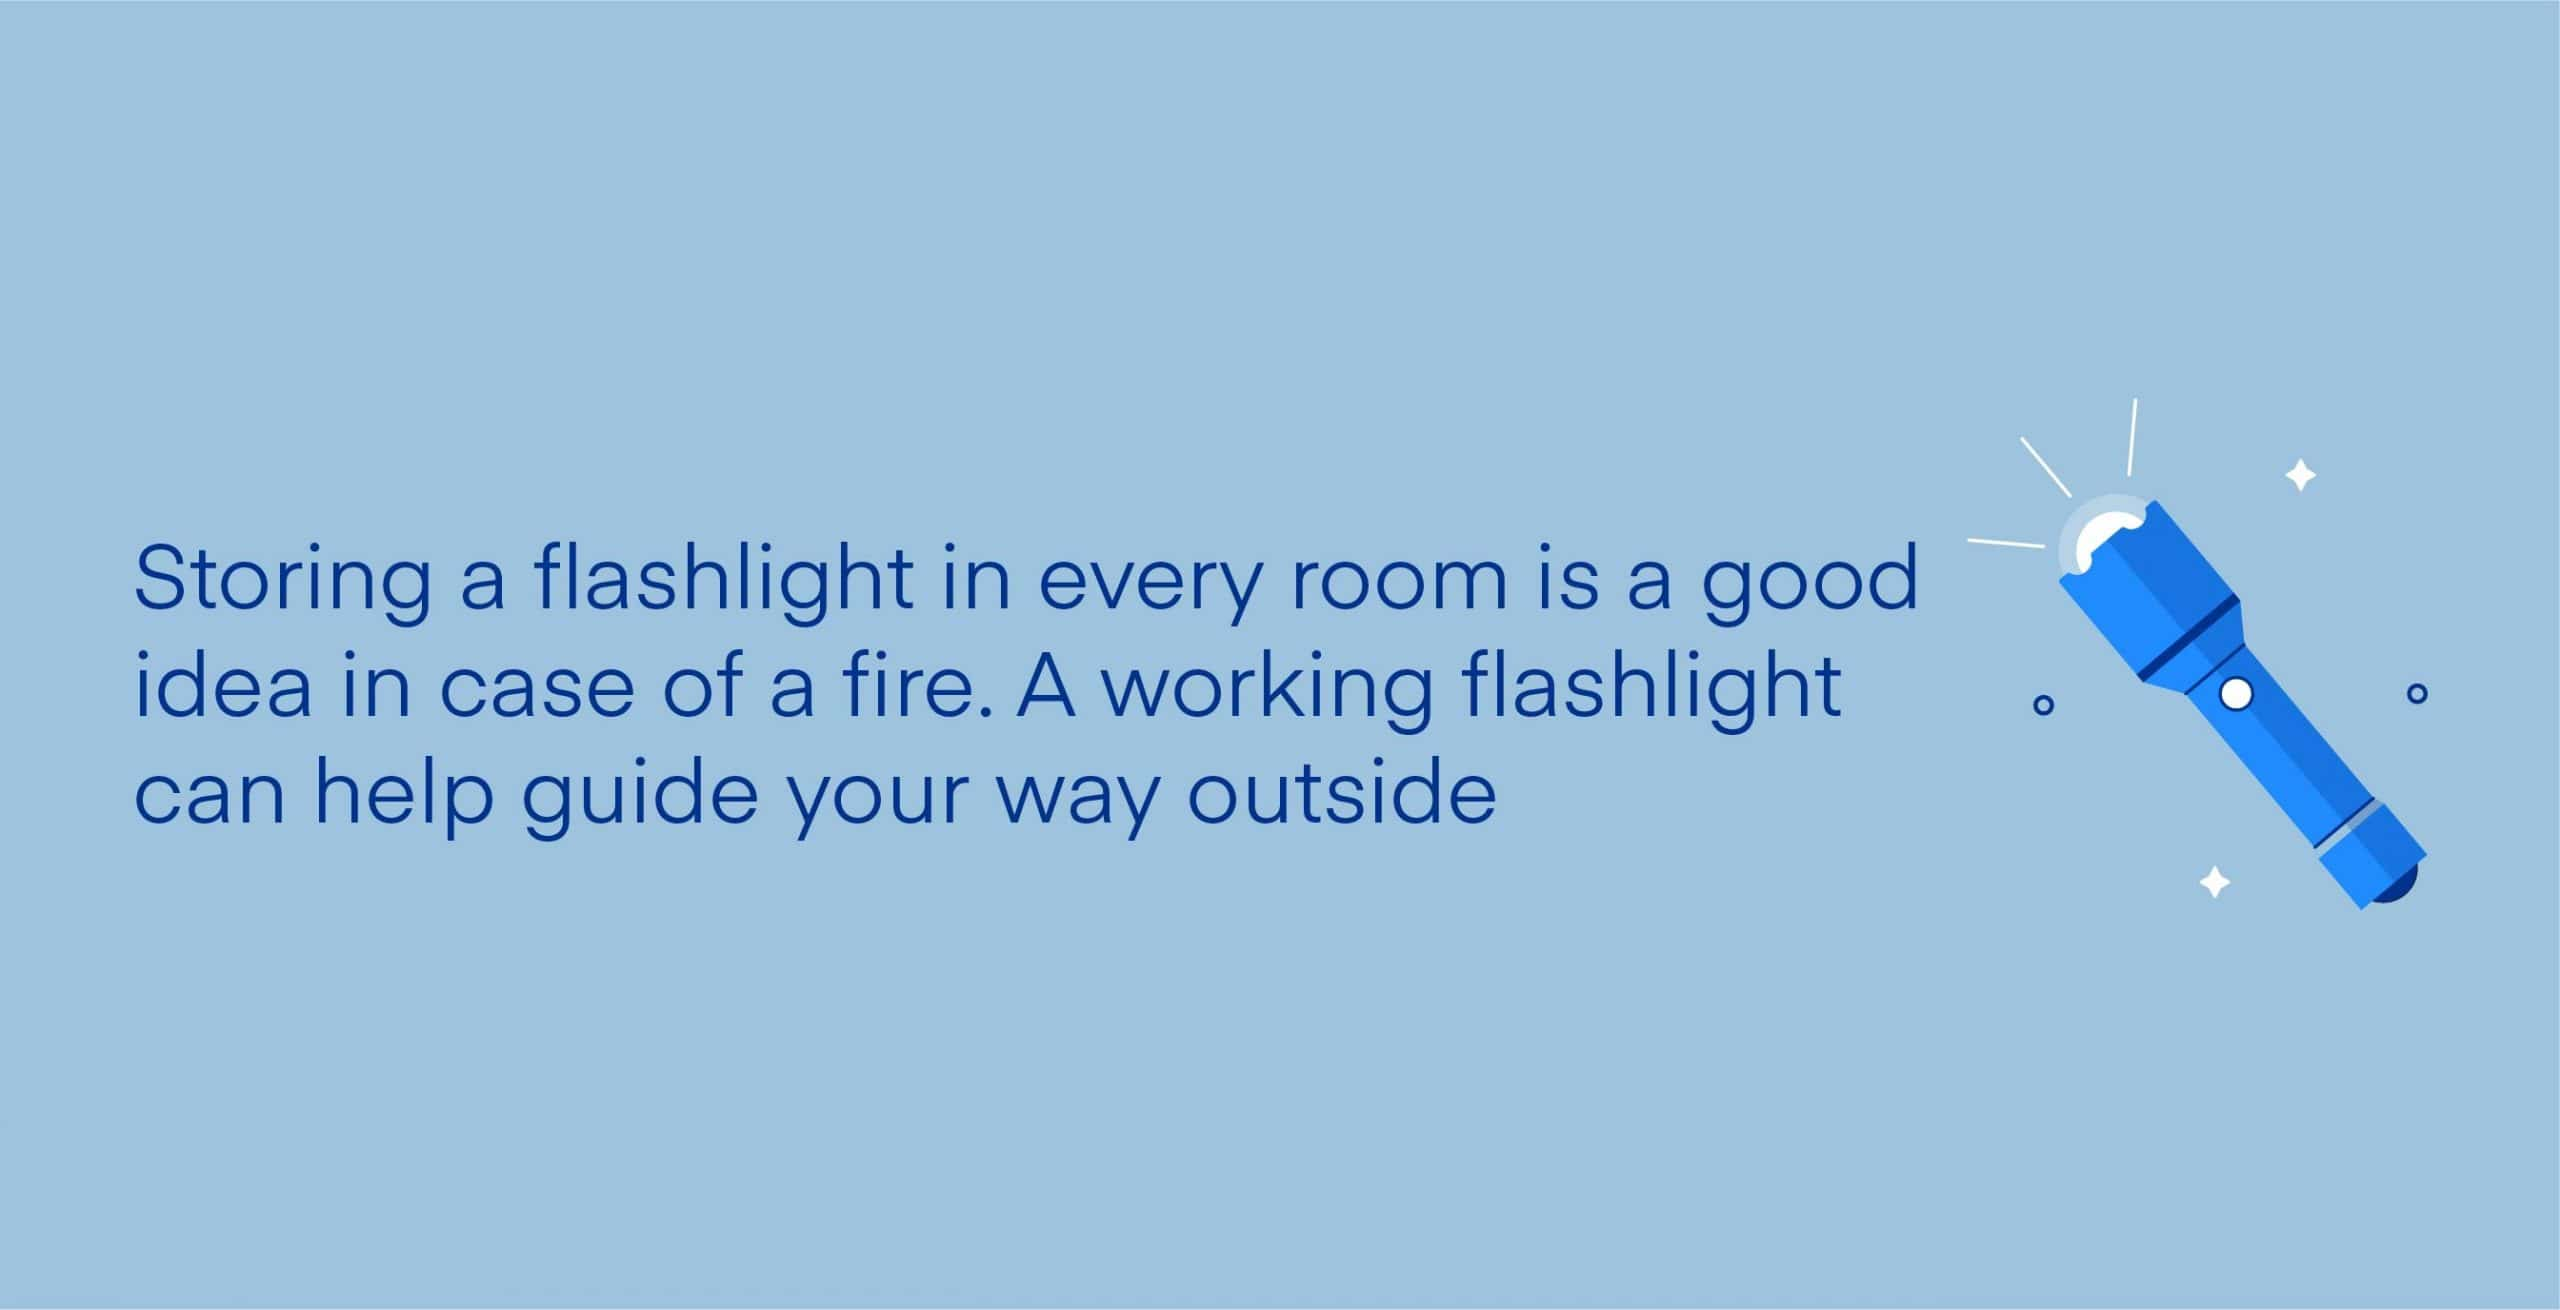 Fire Safety Tips While You Sleep